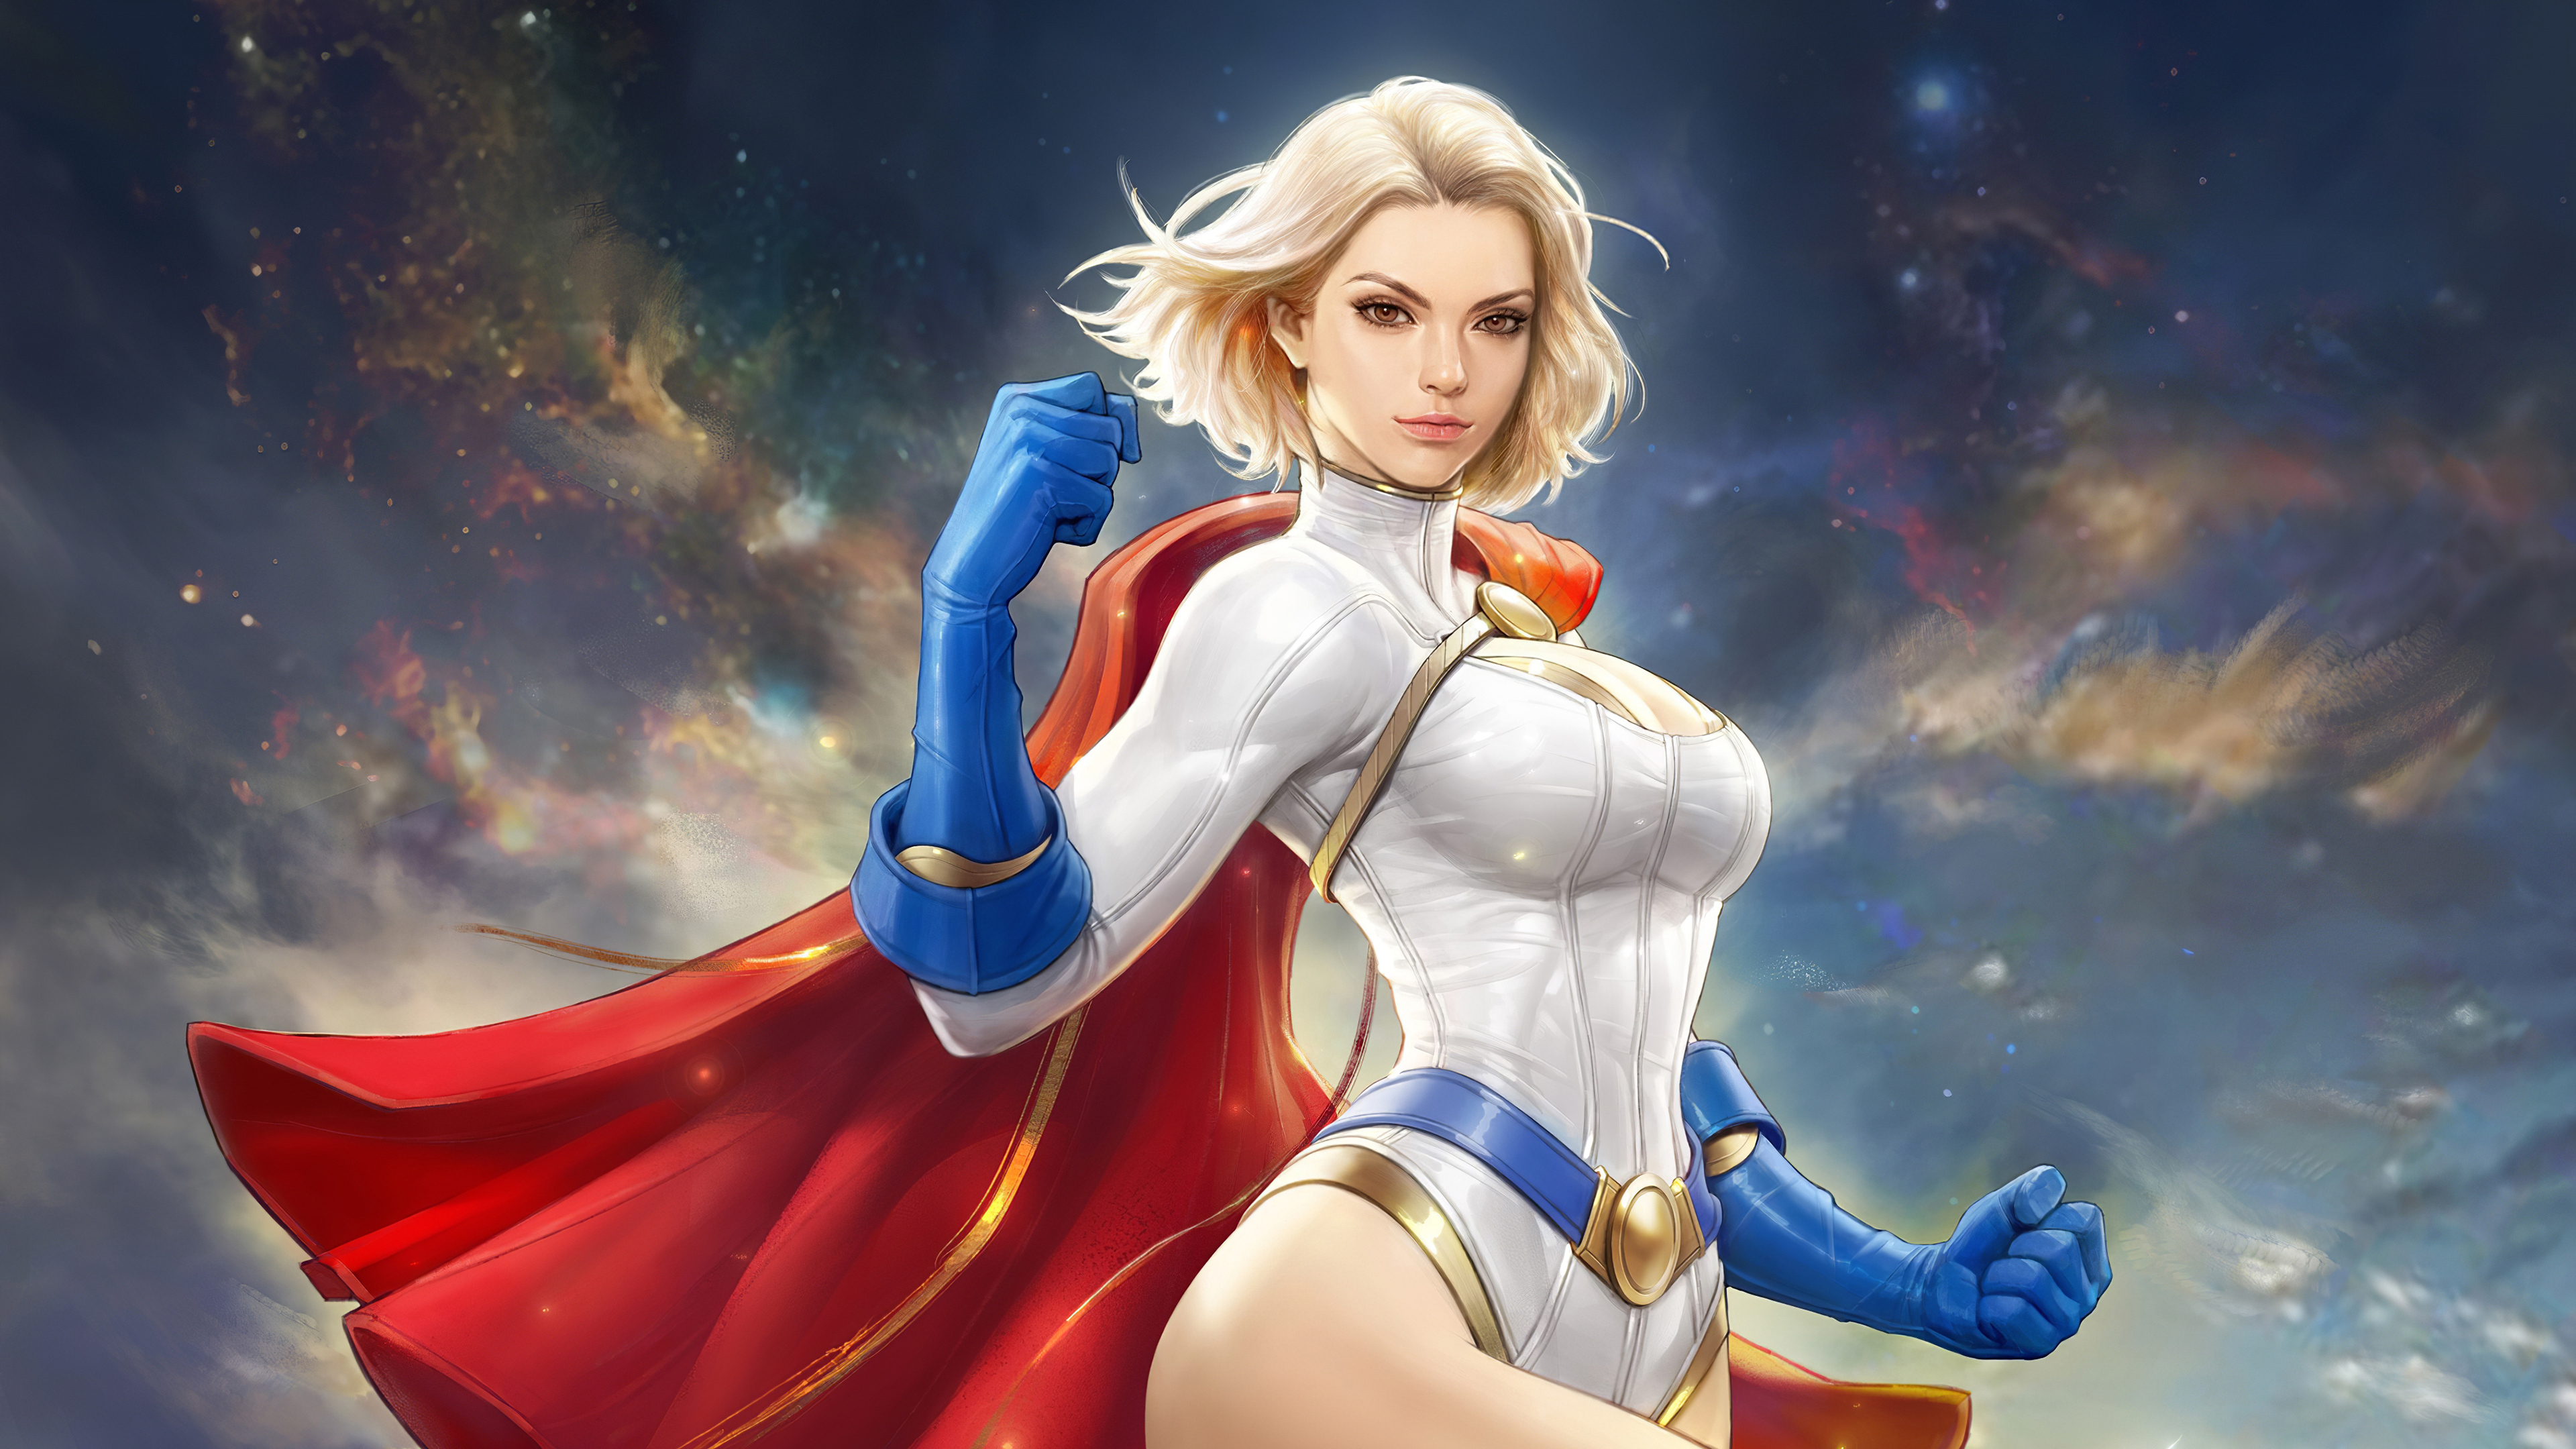 3840x2160 Power Girl 4k 4k HD 4k Wallpapers, Images ...